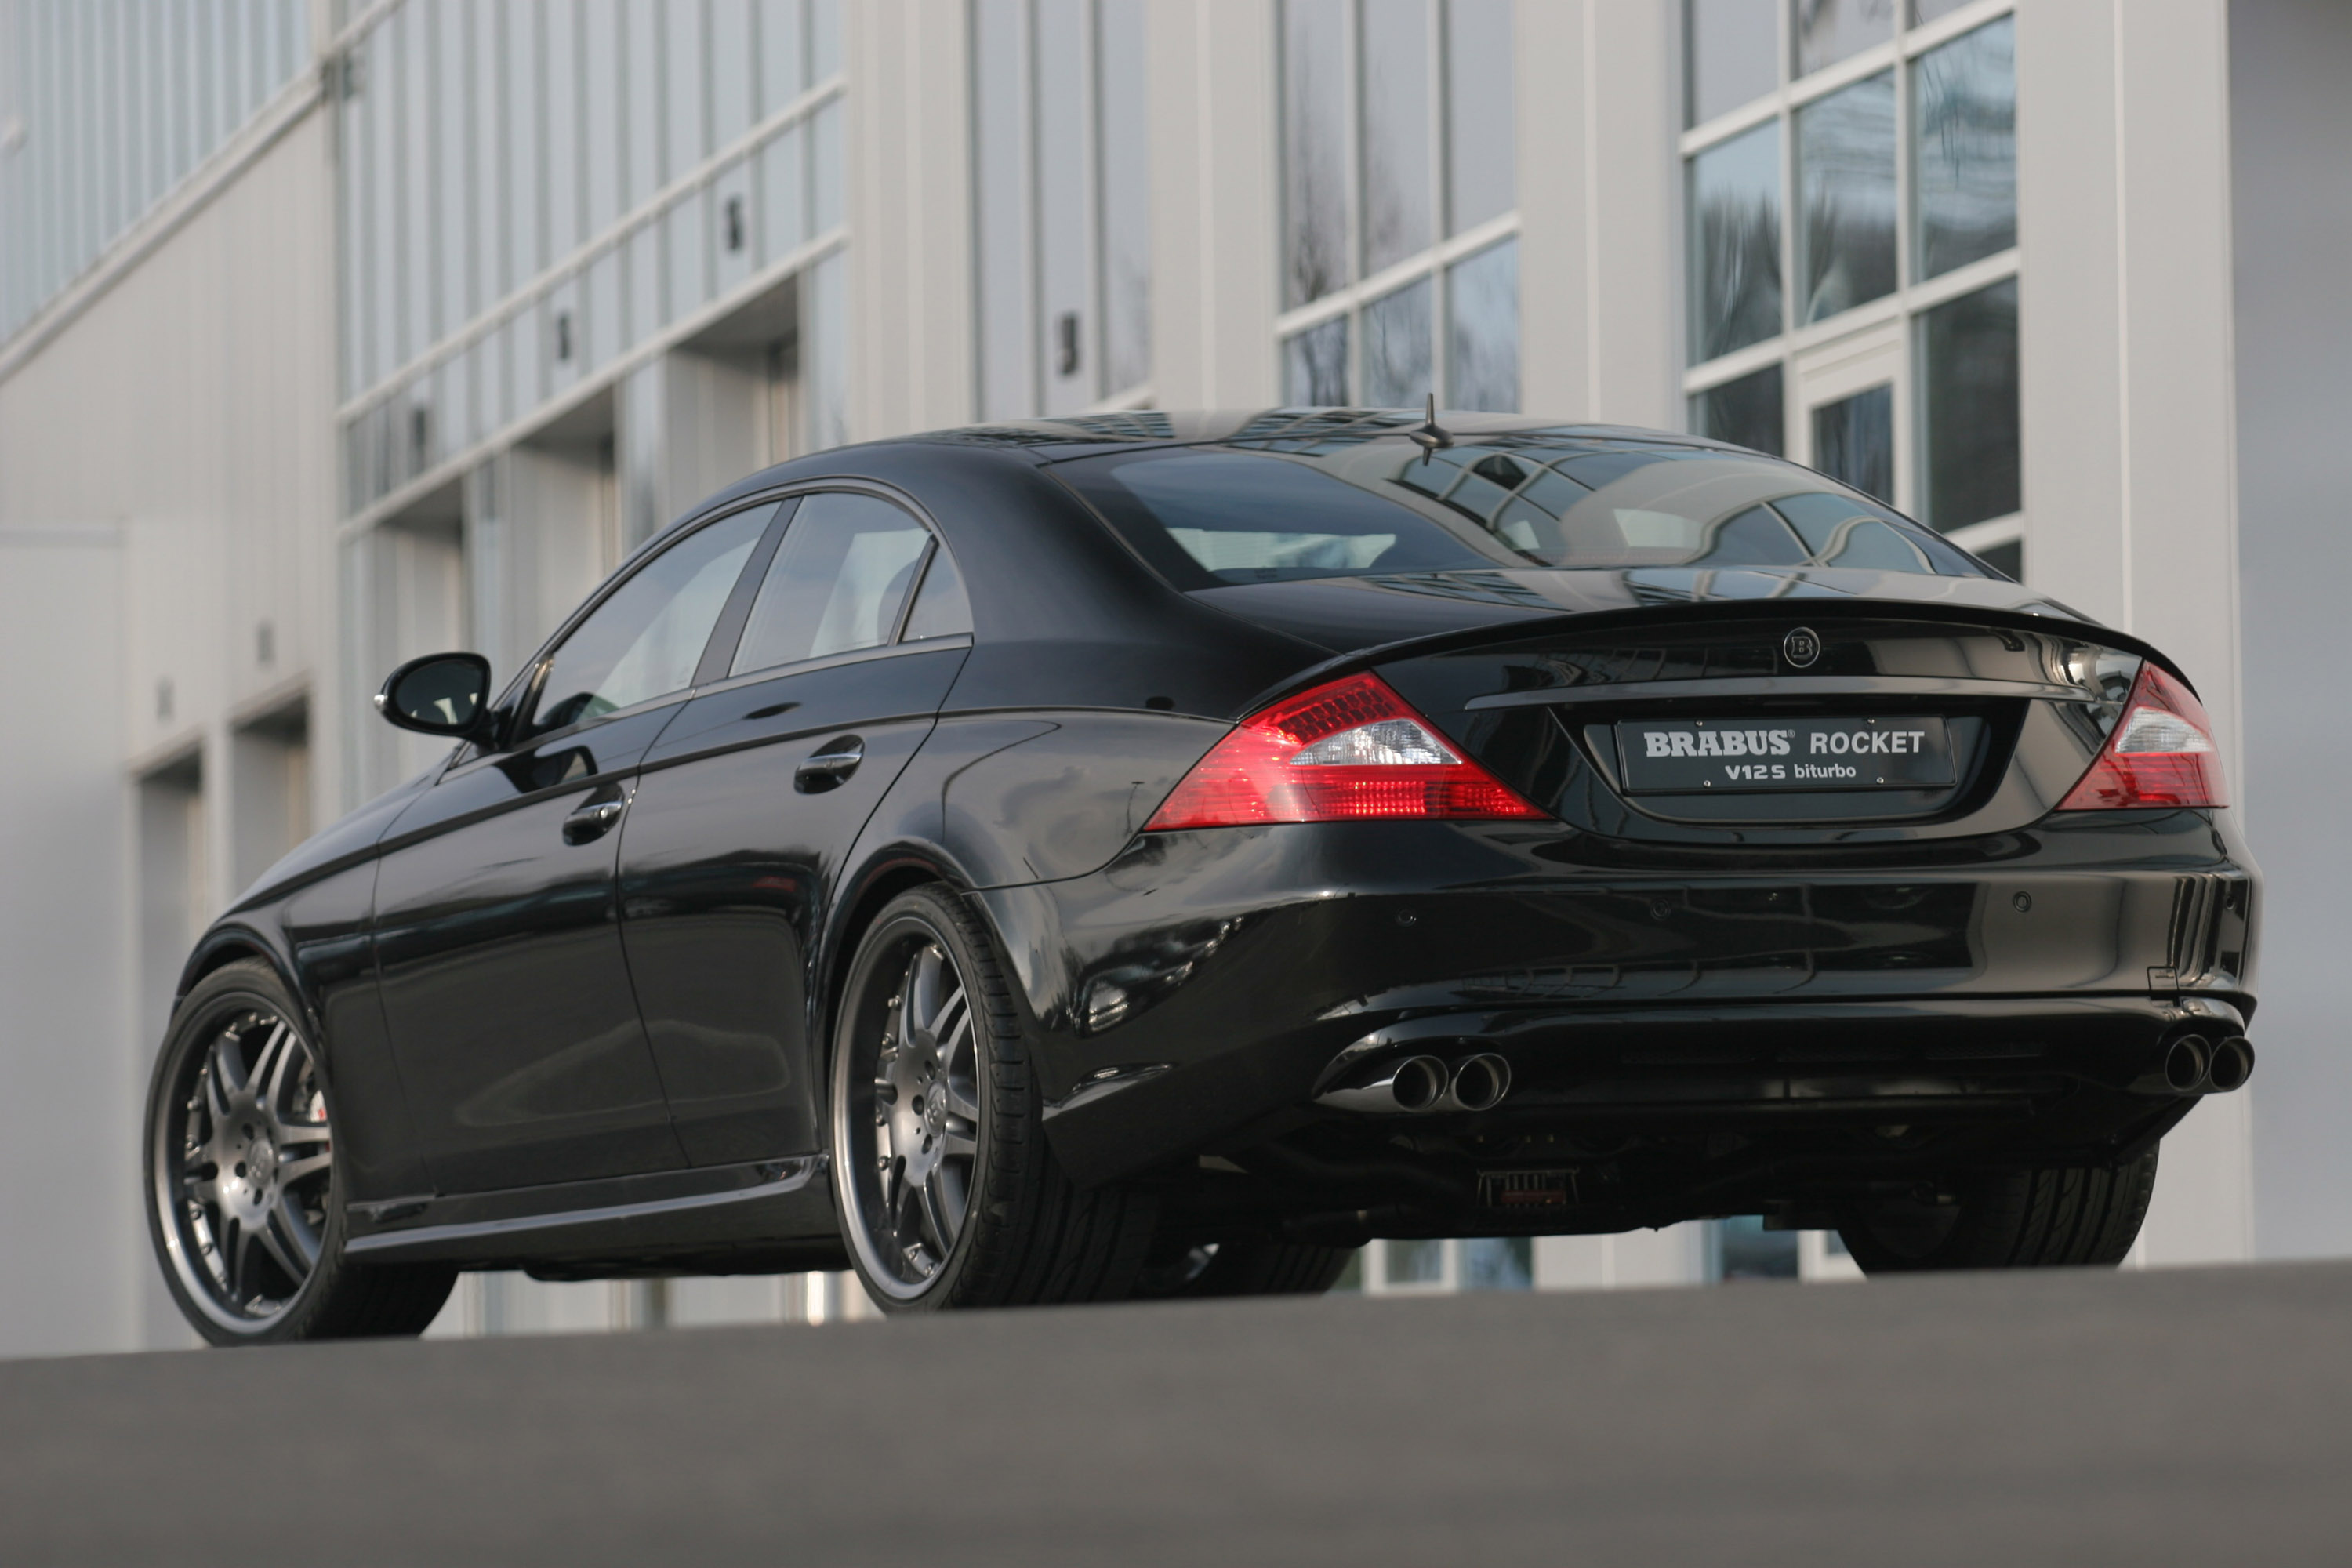 Toyota Ft 86 >> Brabus Rocket Mercedes-Benz CLS - Picture 57995